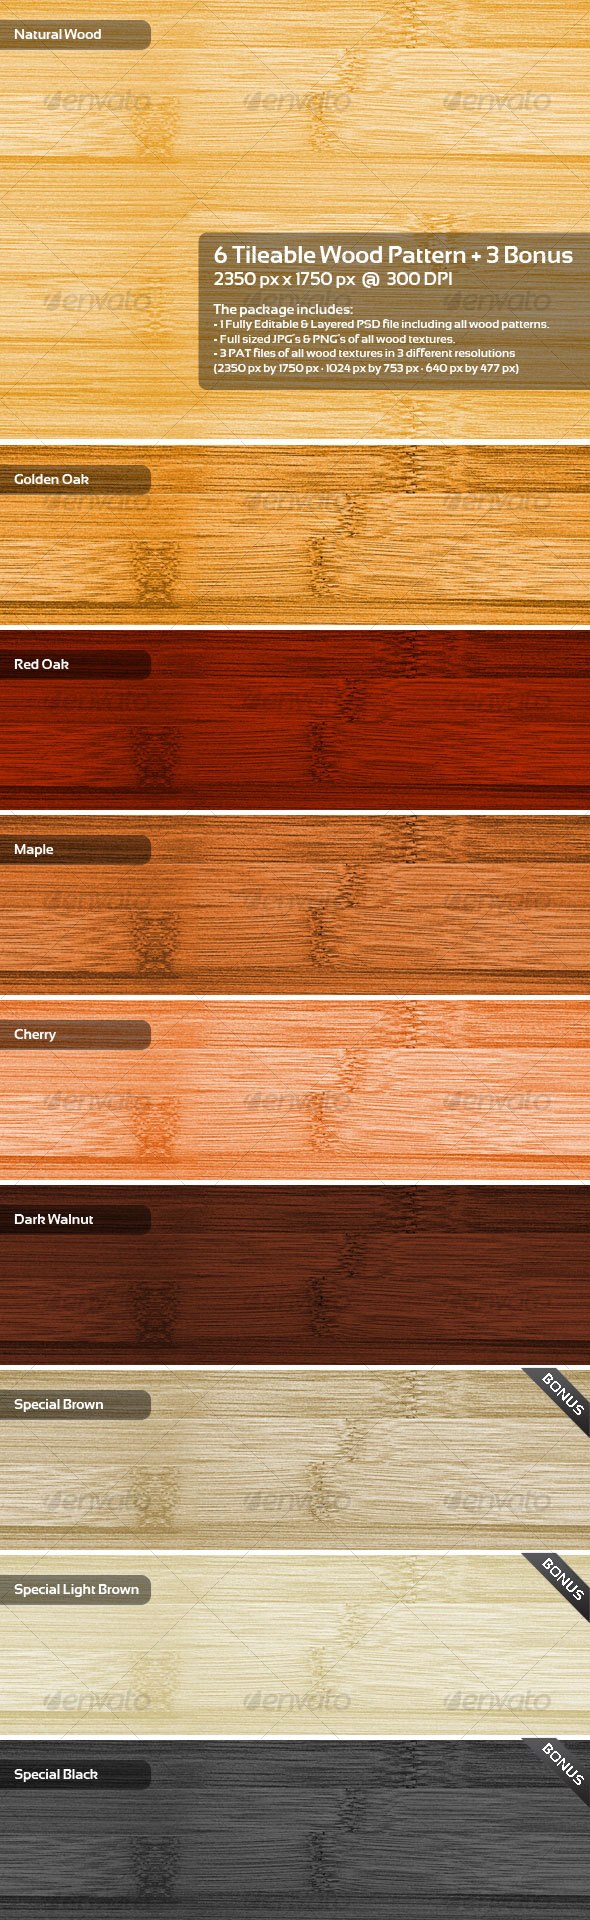 6 Tileable Wood Pattern + 3 Bonus - Photoshop Add-ons